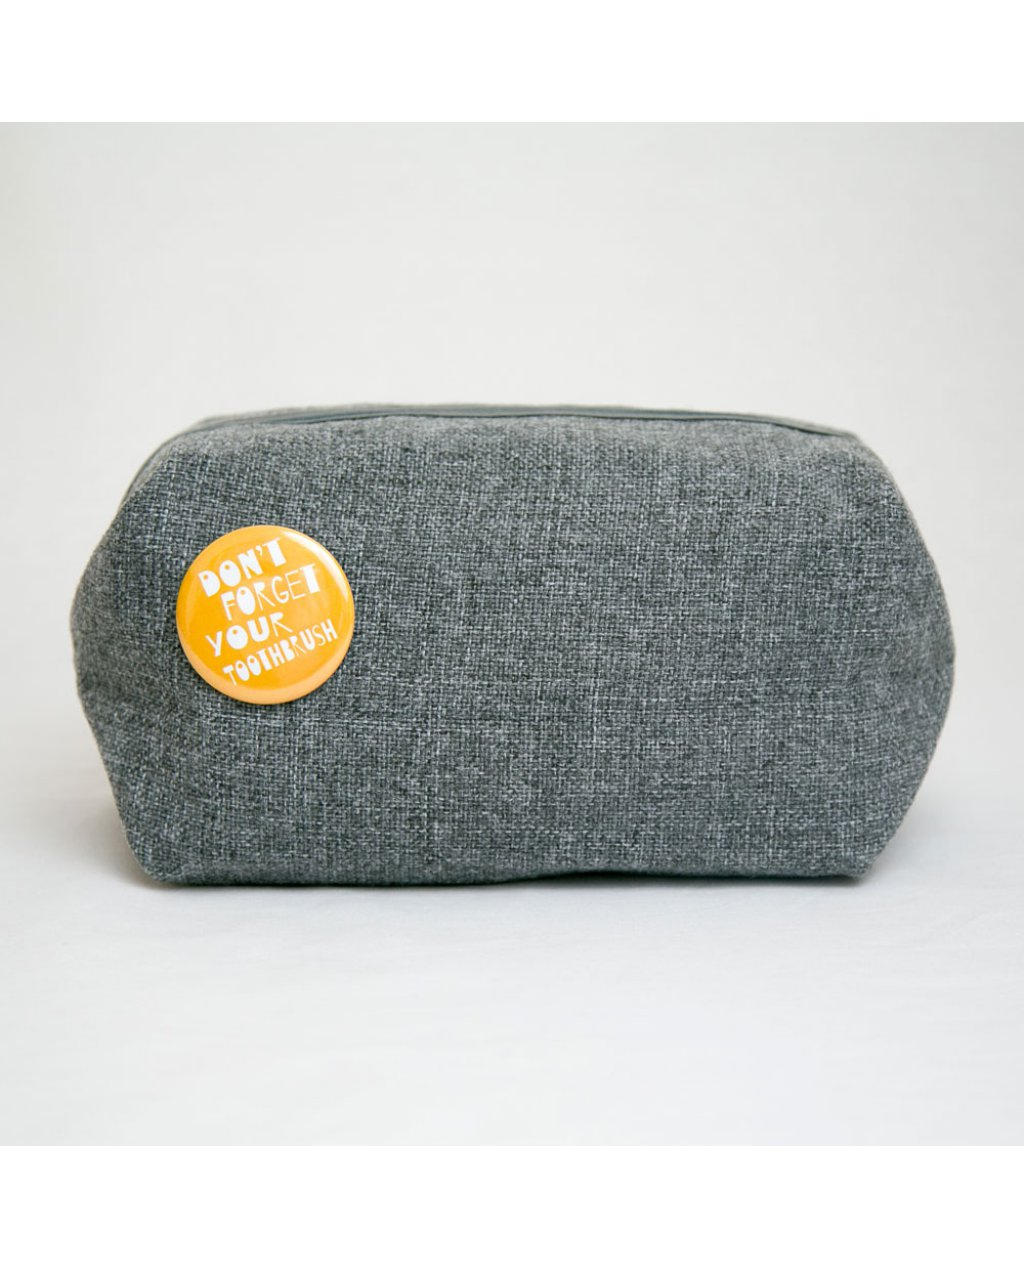 Grey Washbag 'Don't forget your toothbrush'